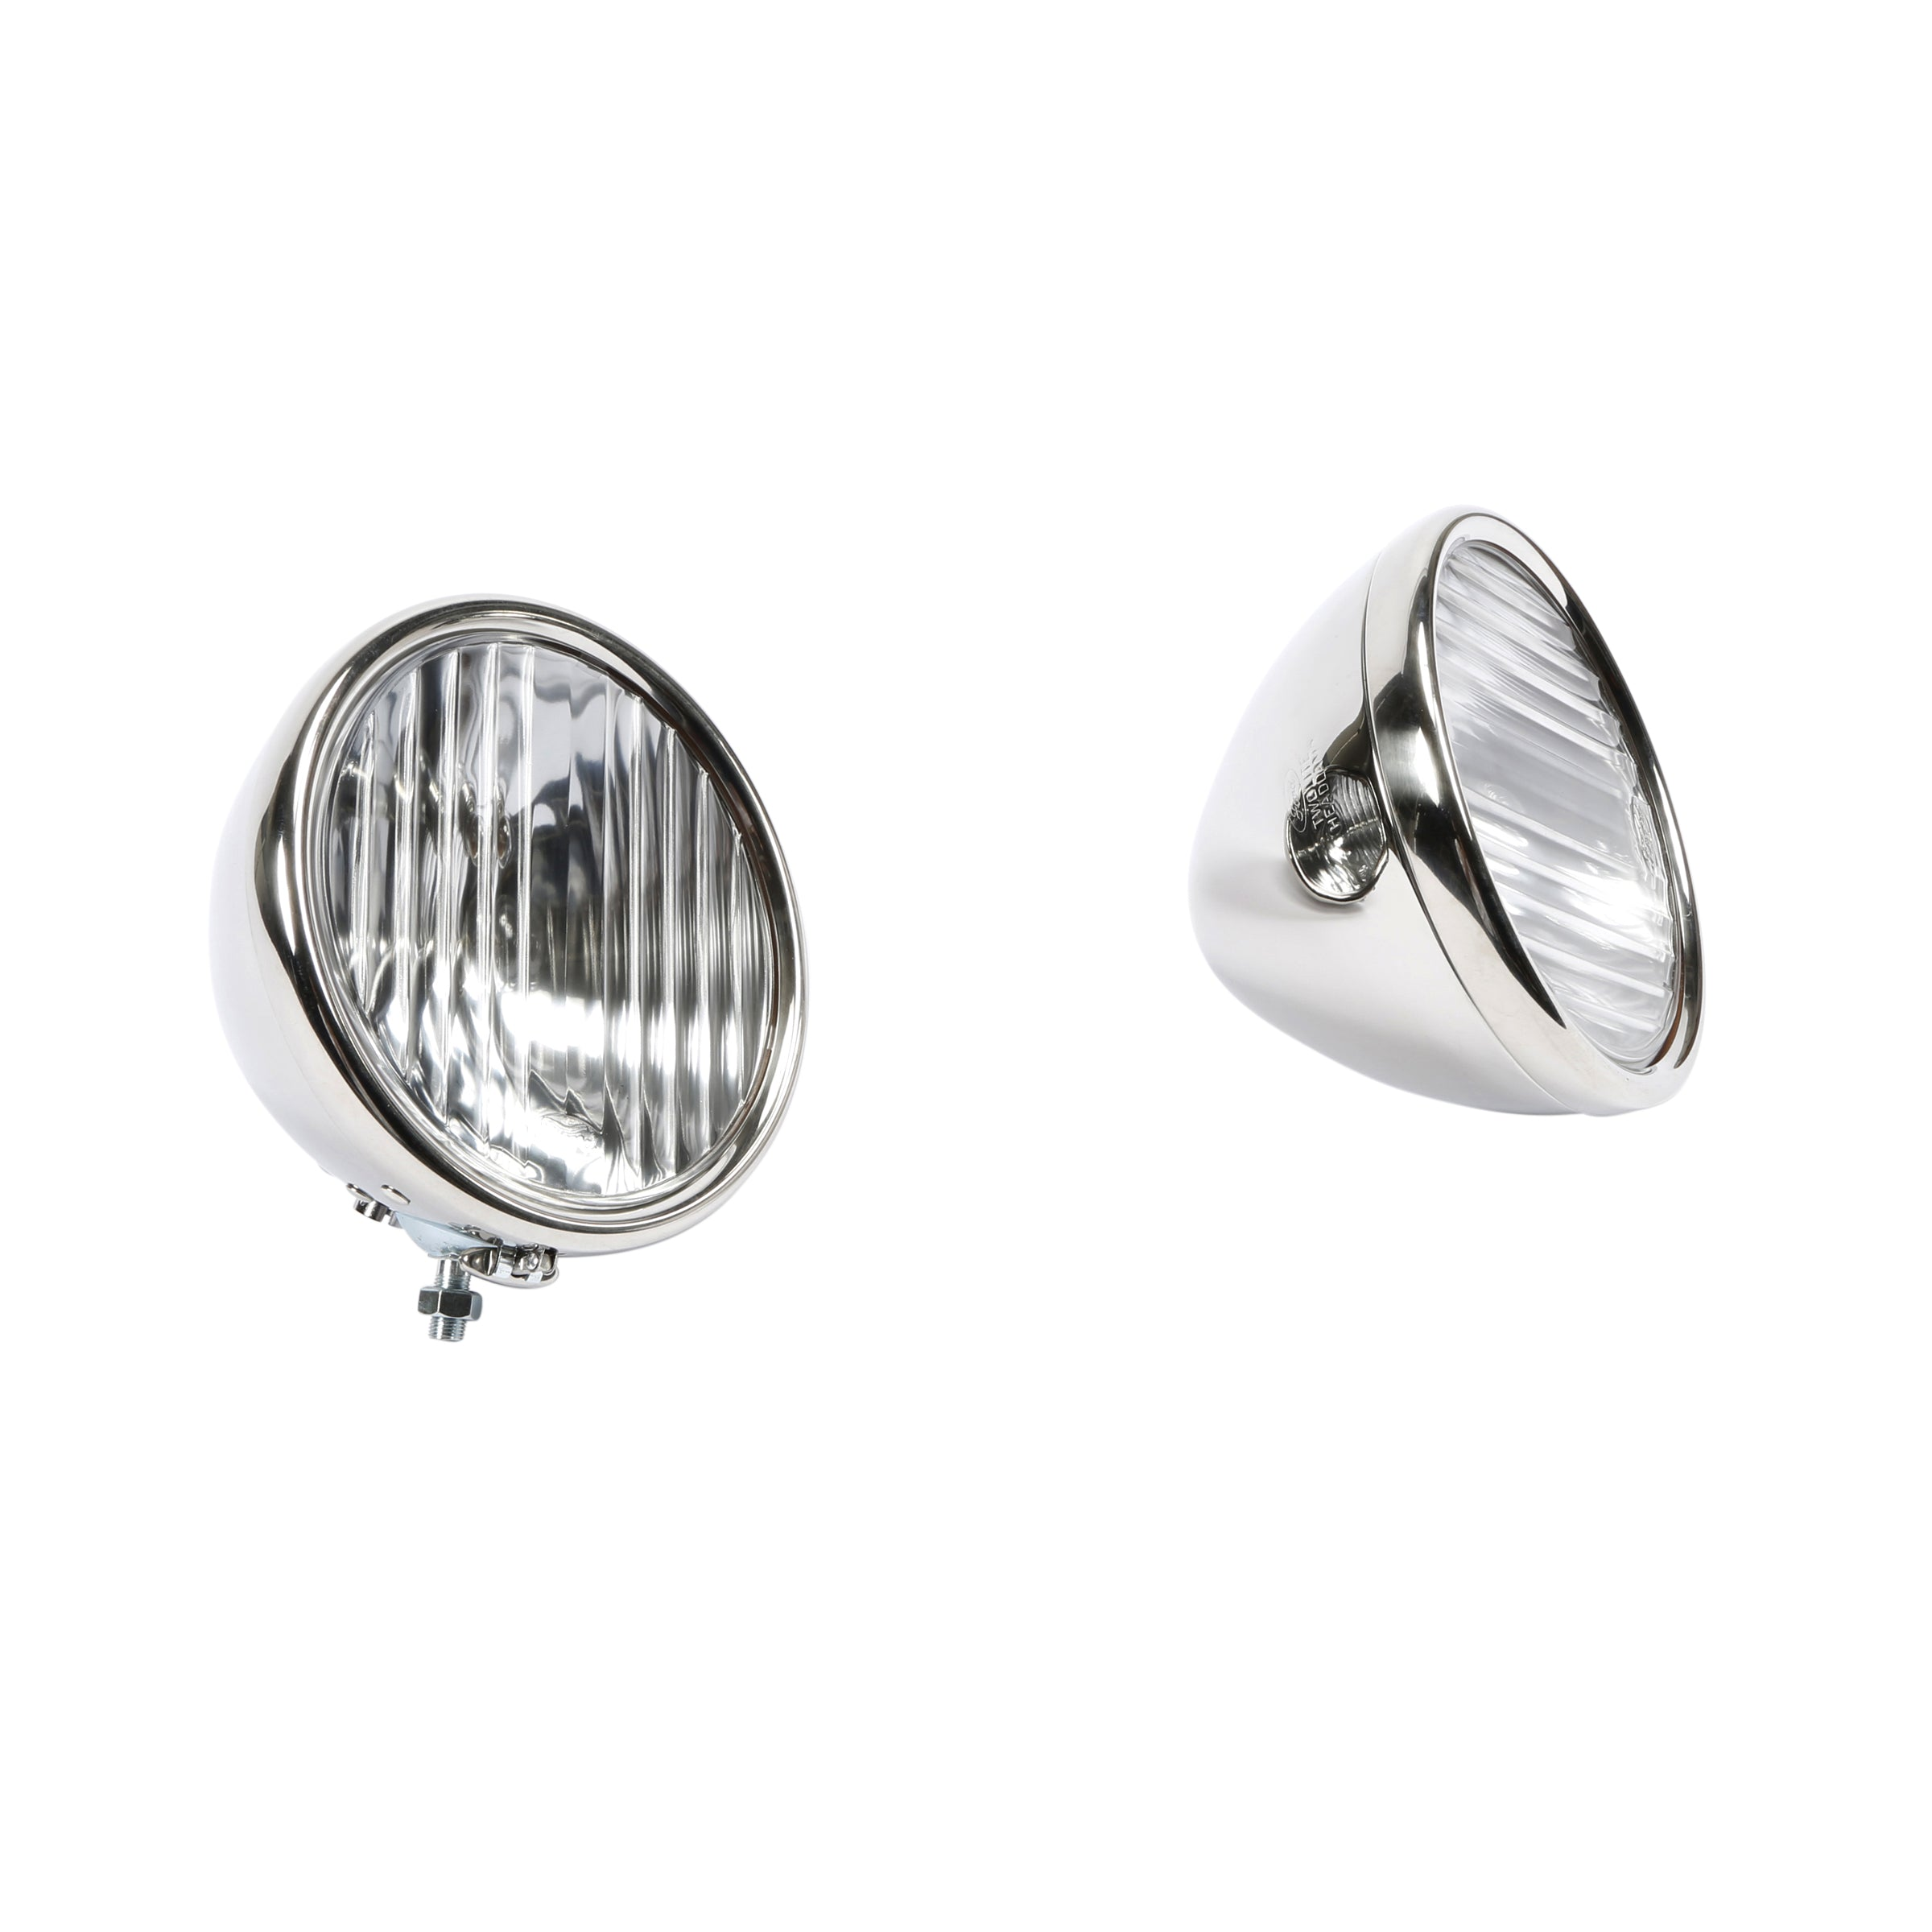 Headlights (6 Volt 2 Bulb Reflector) • 1928-29 Stainless w/Fluted Lens